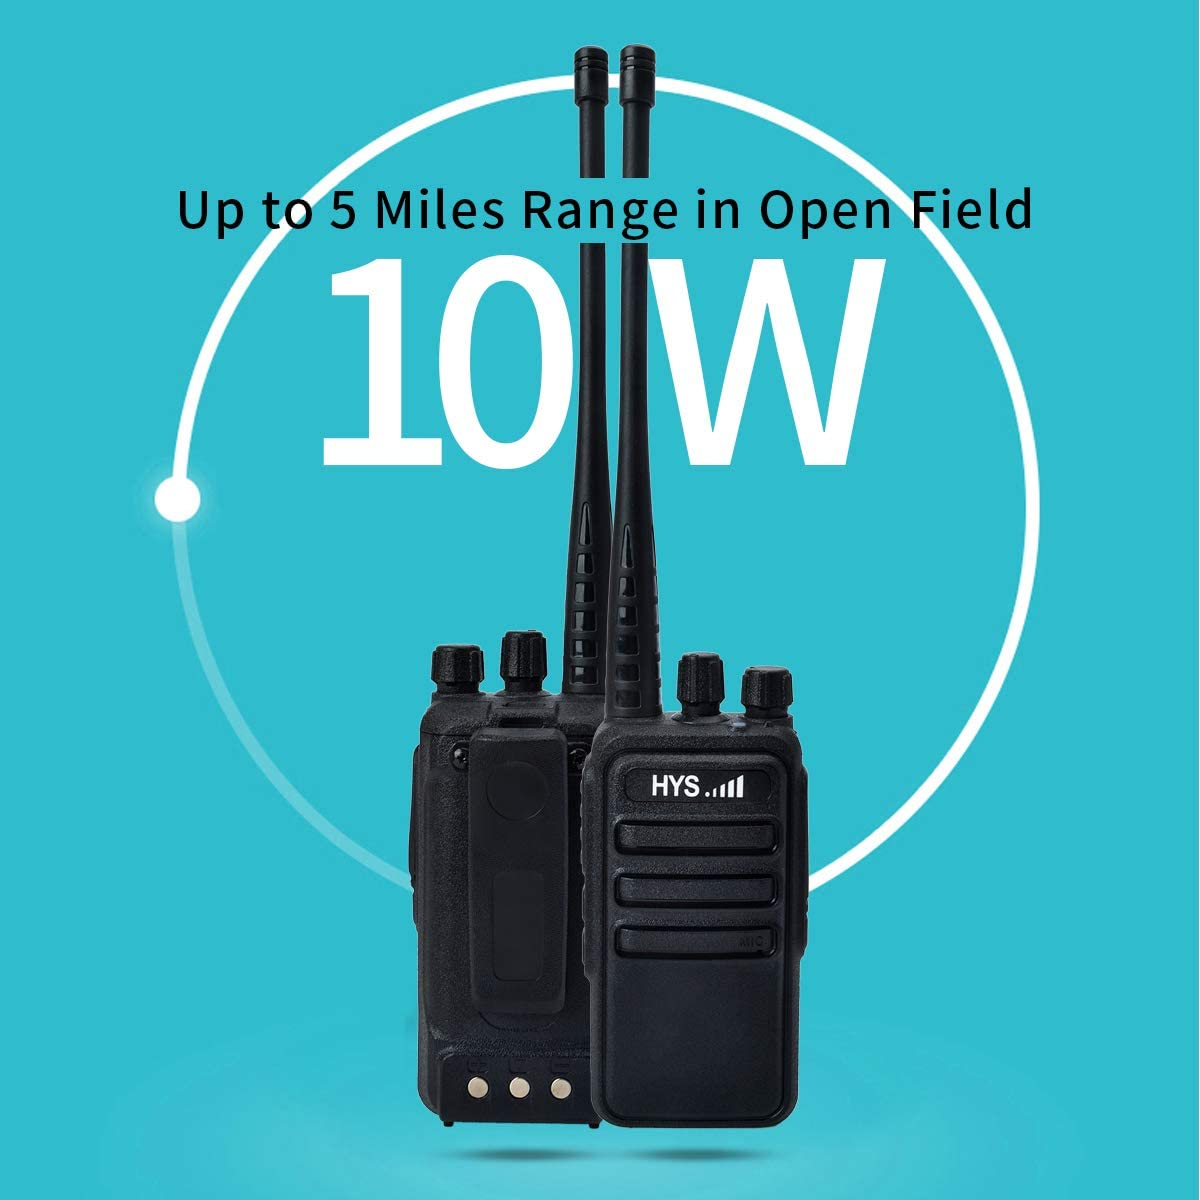 HYS Two-Way Radios Long Range 2 Pack Walkie Talkies Up to 5 Miles Range in Open Field 16 Channel 400-470MHz UHF Handheld Radios with Li-ion Battery and Charger Included